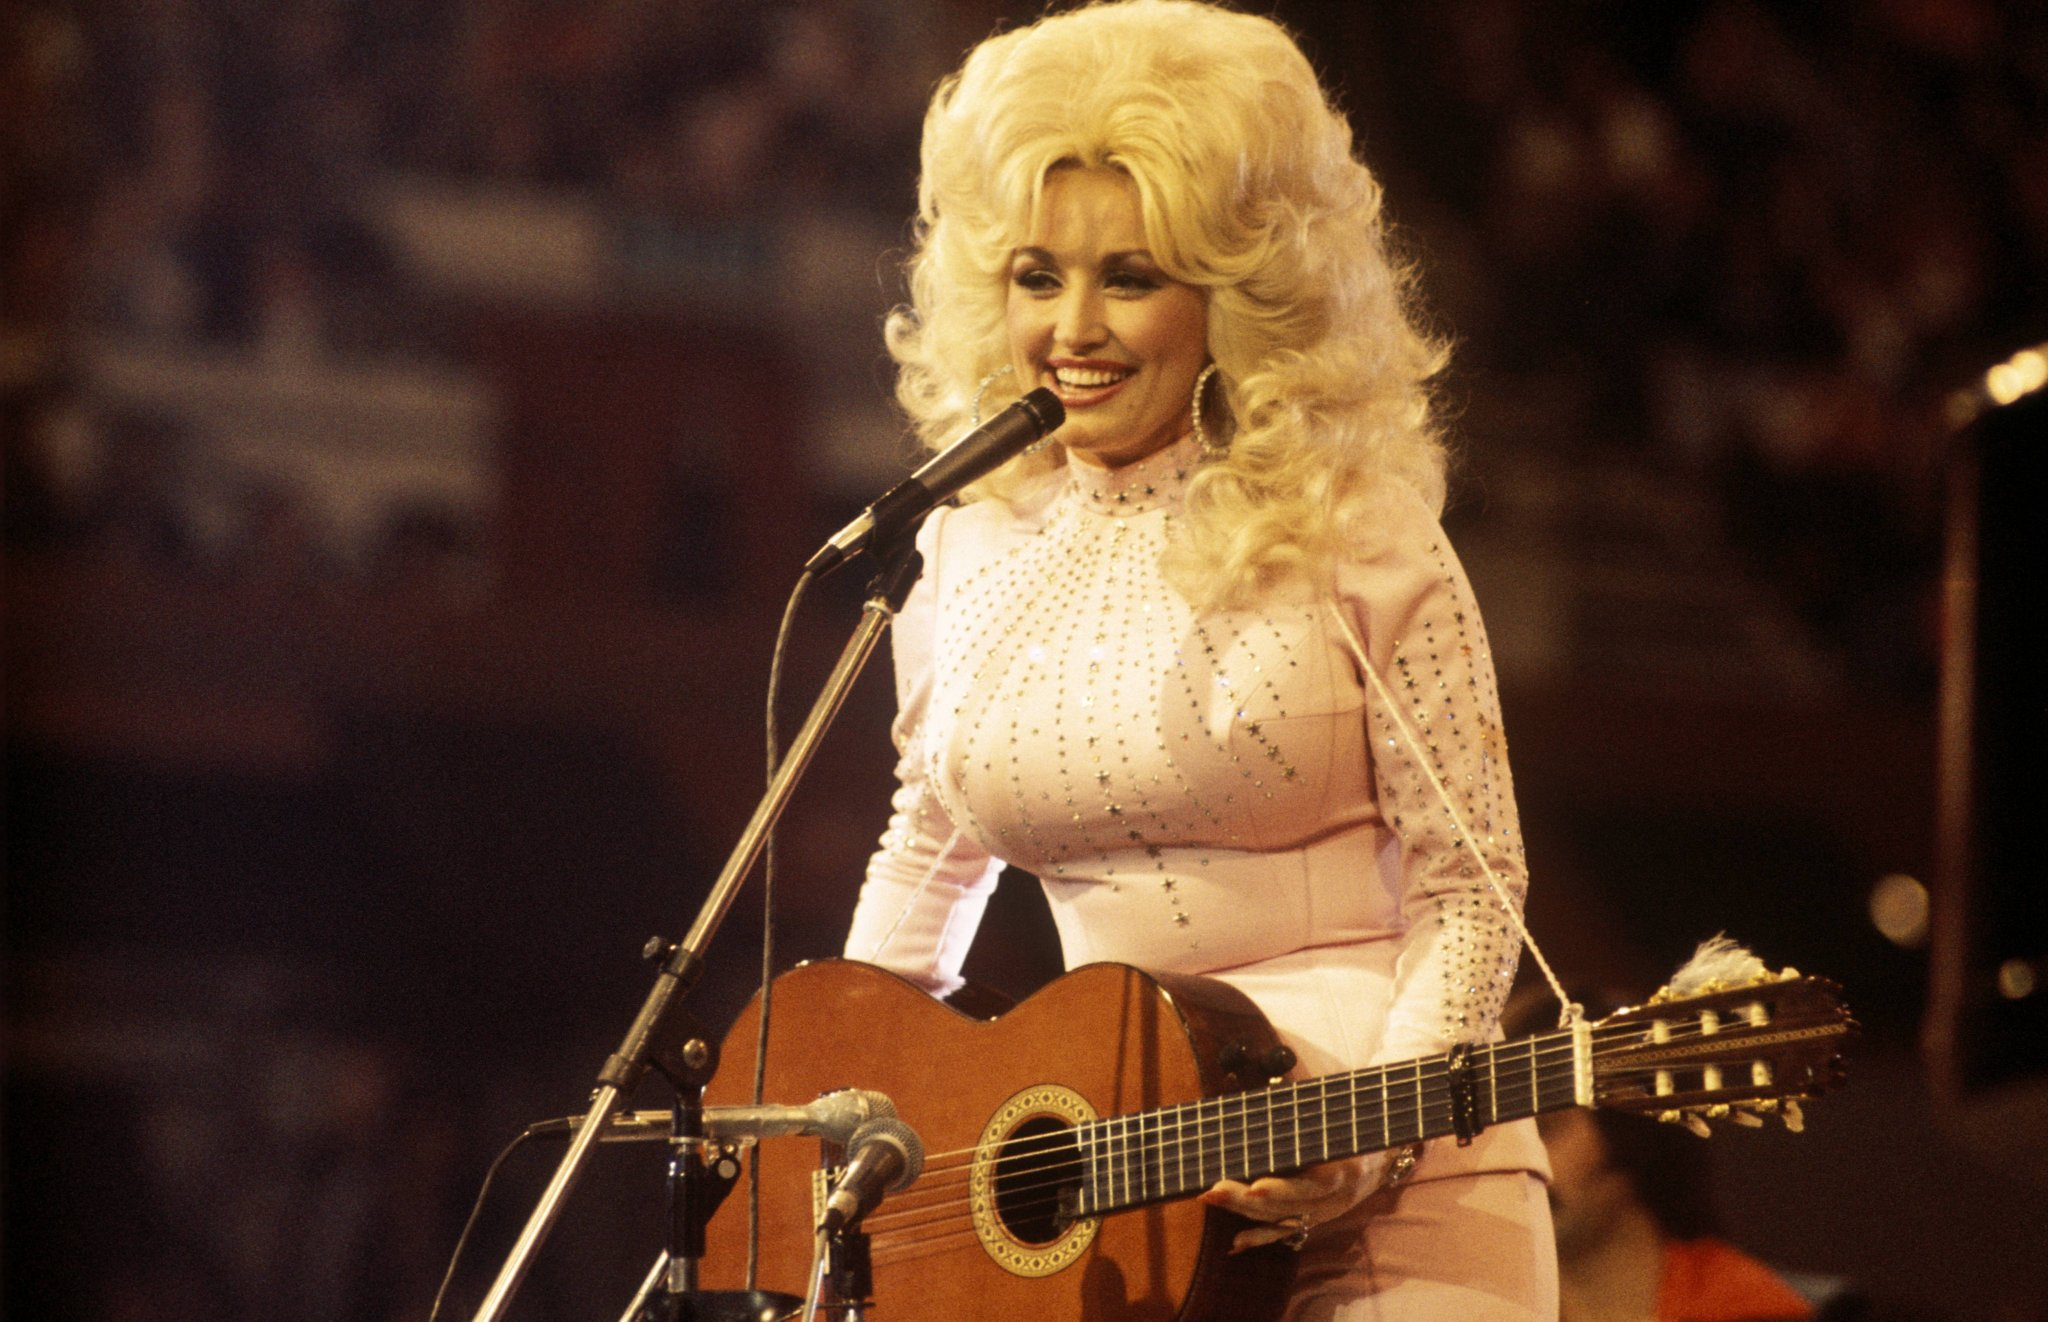 Dolly Parton Addresses Rumors That She's Covered In Hidden Tattoos